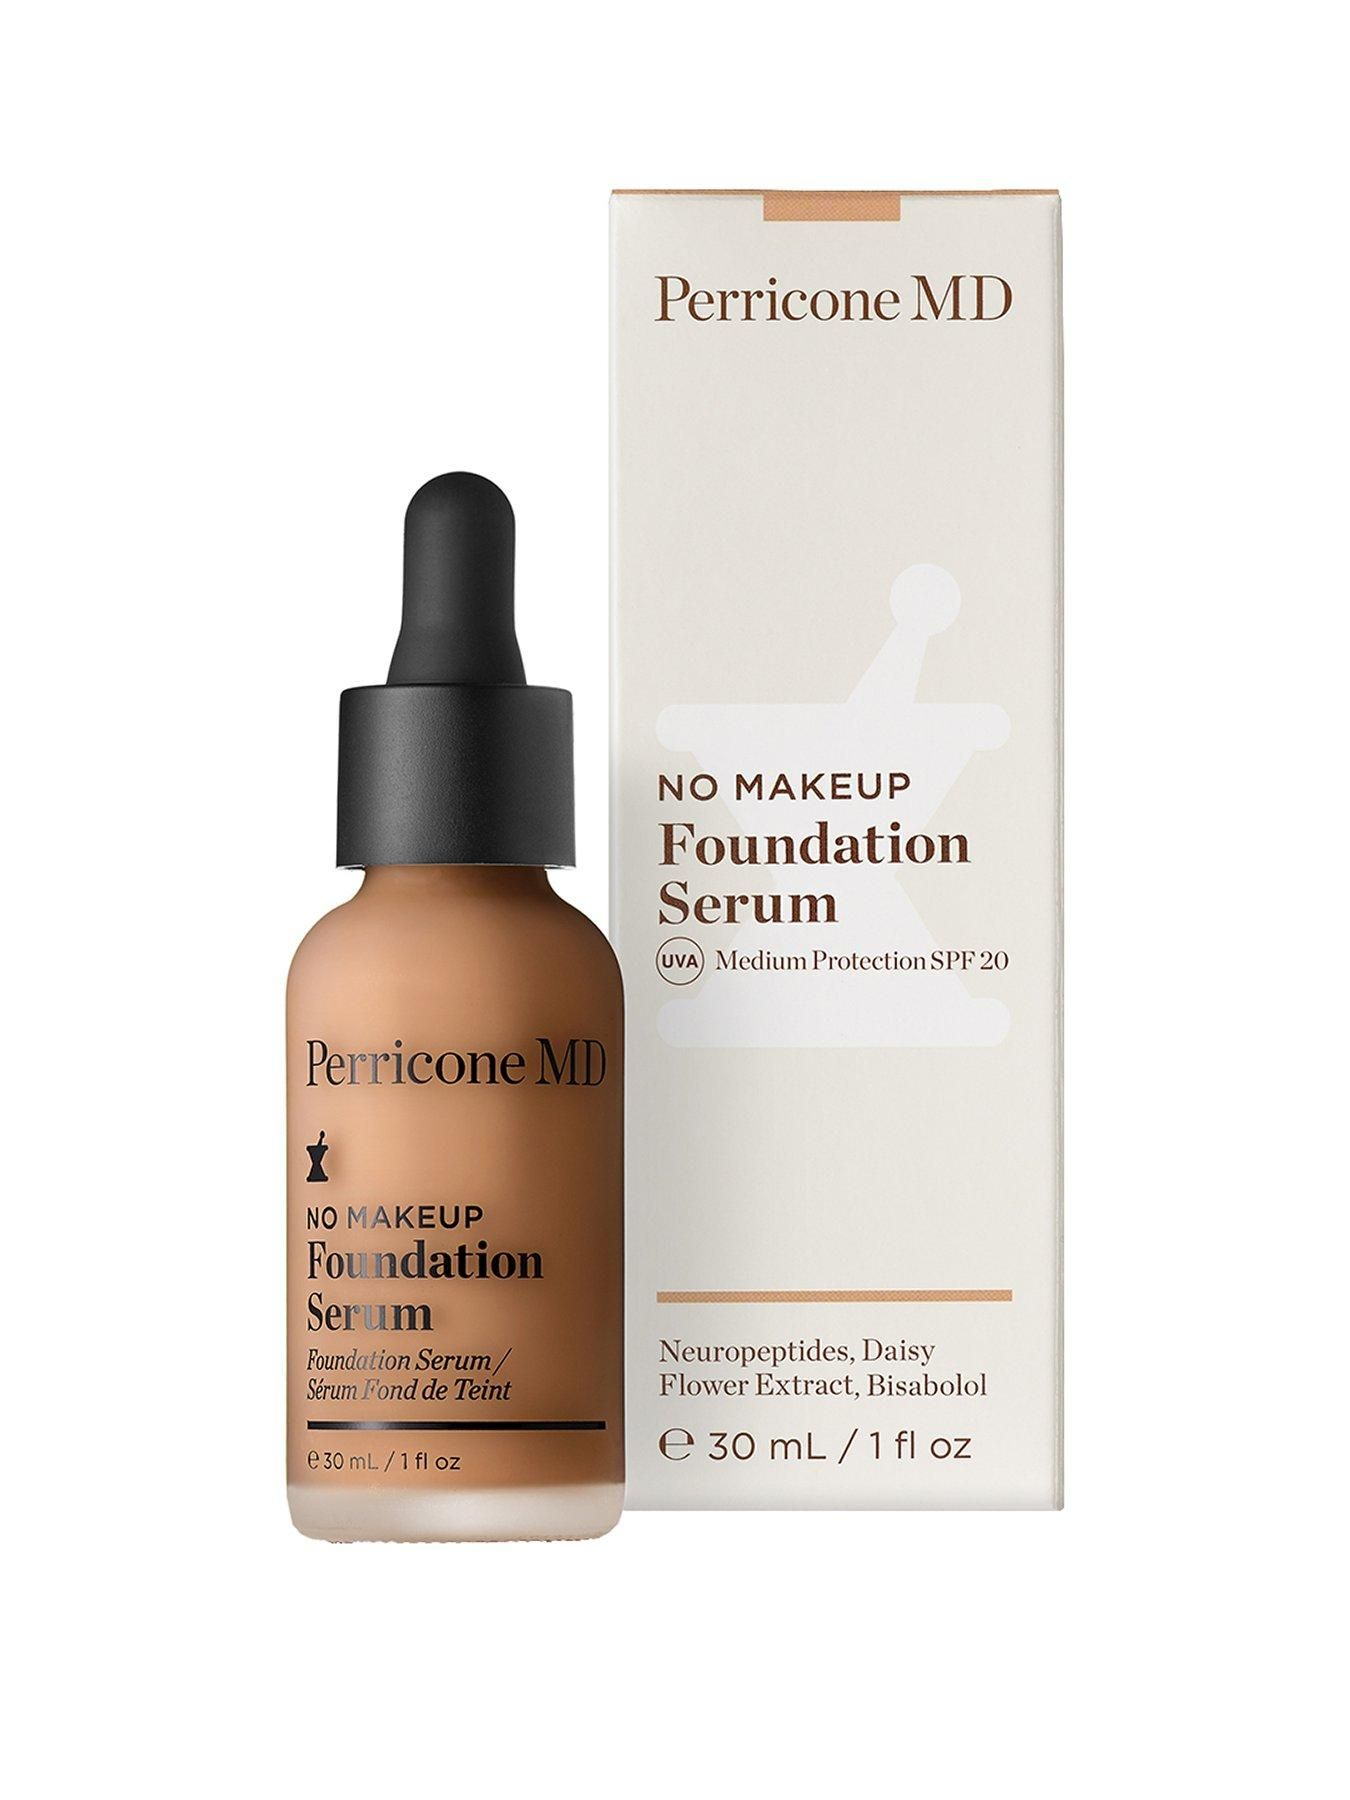 Perricone Md No Makeup Foundation Serum Broad Spectrum